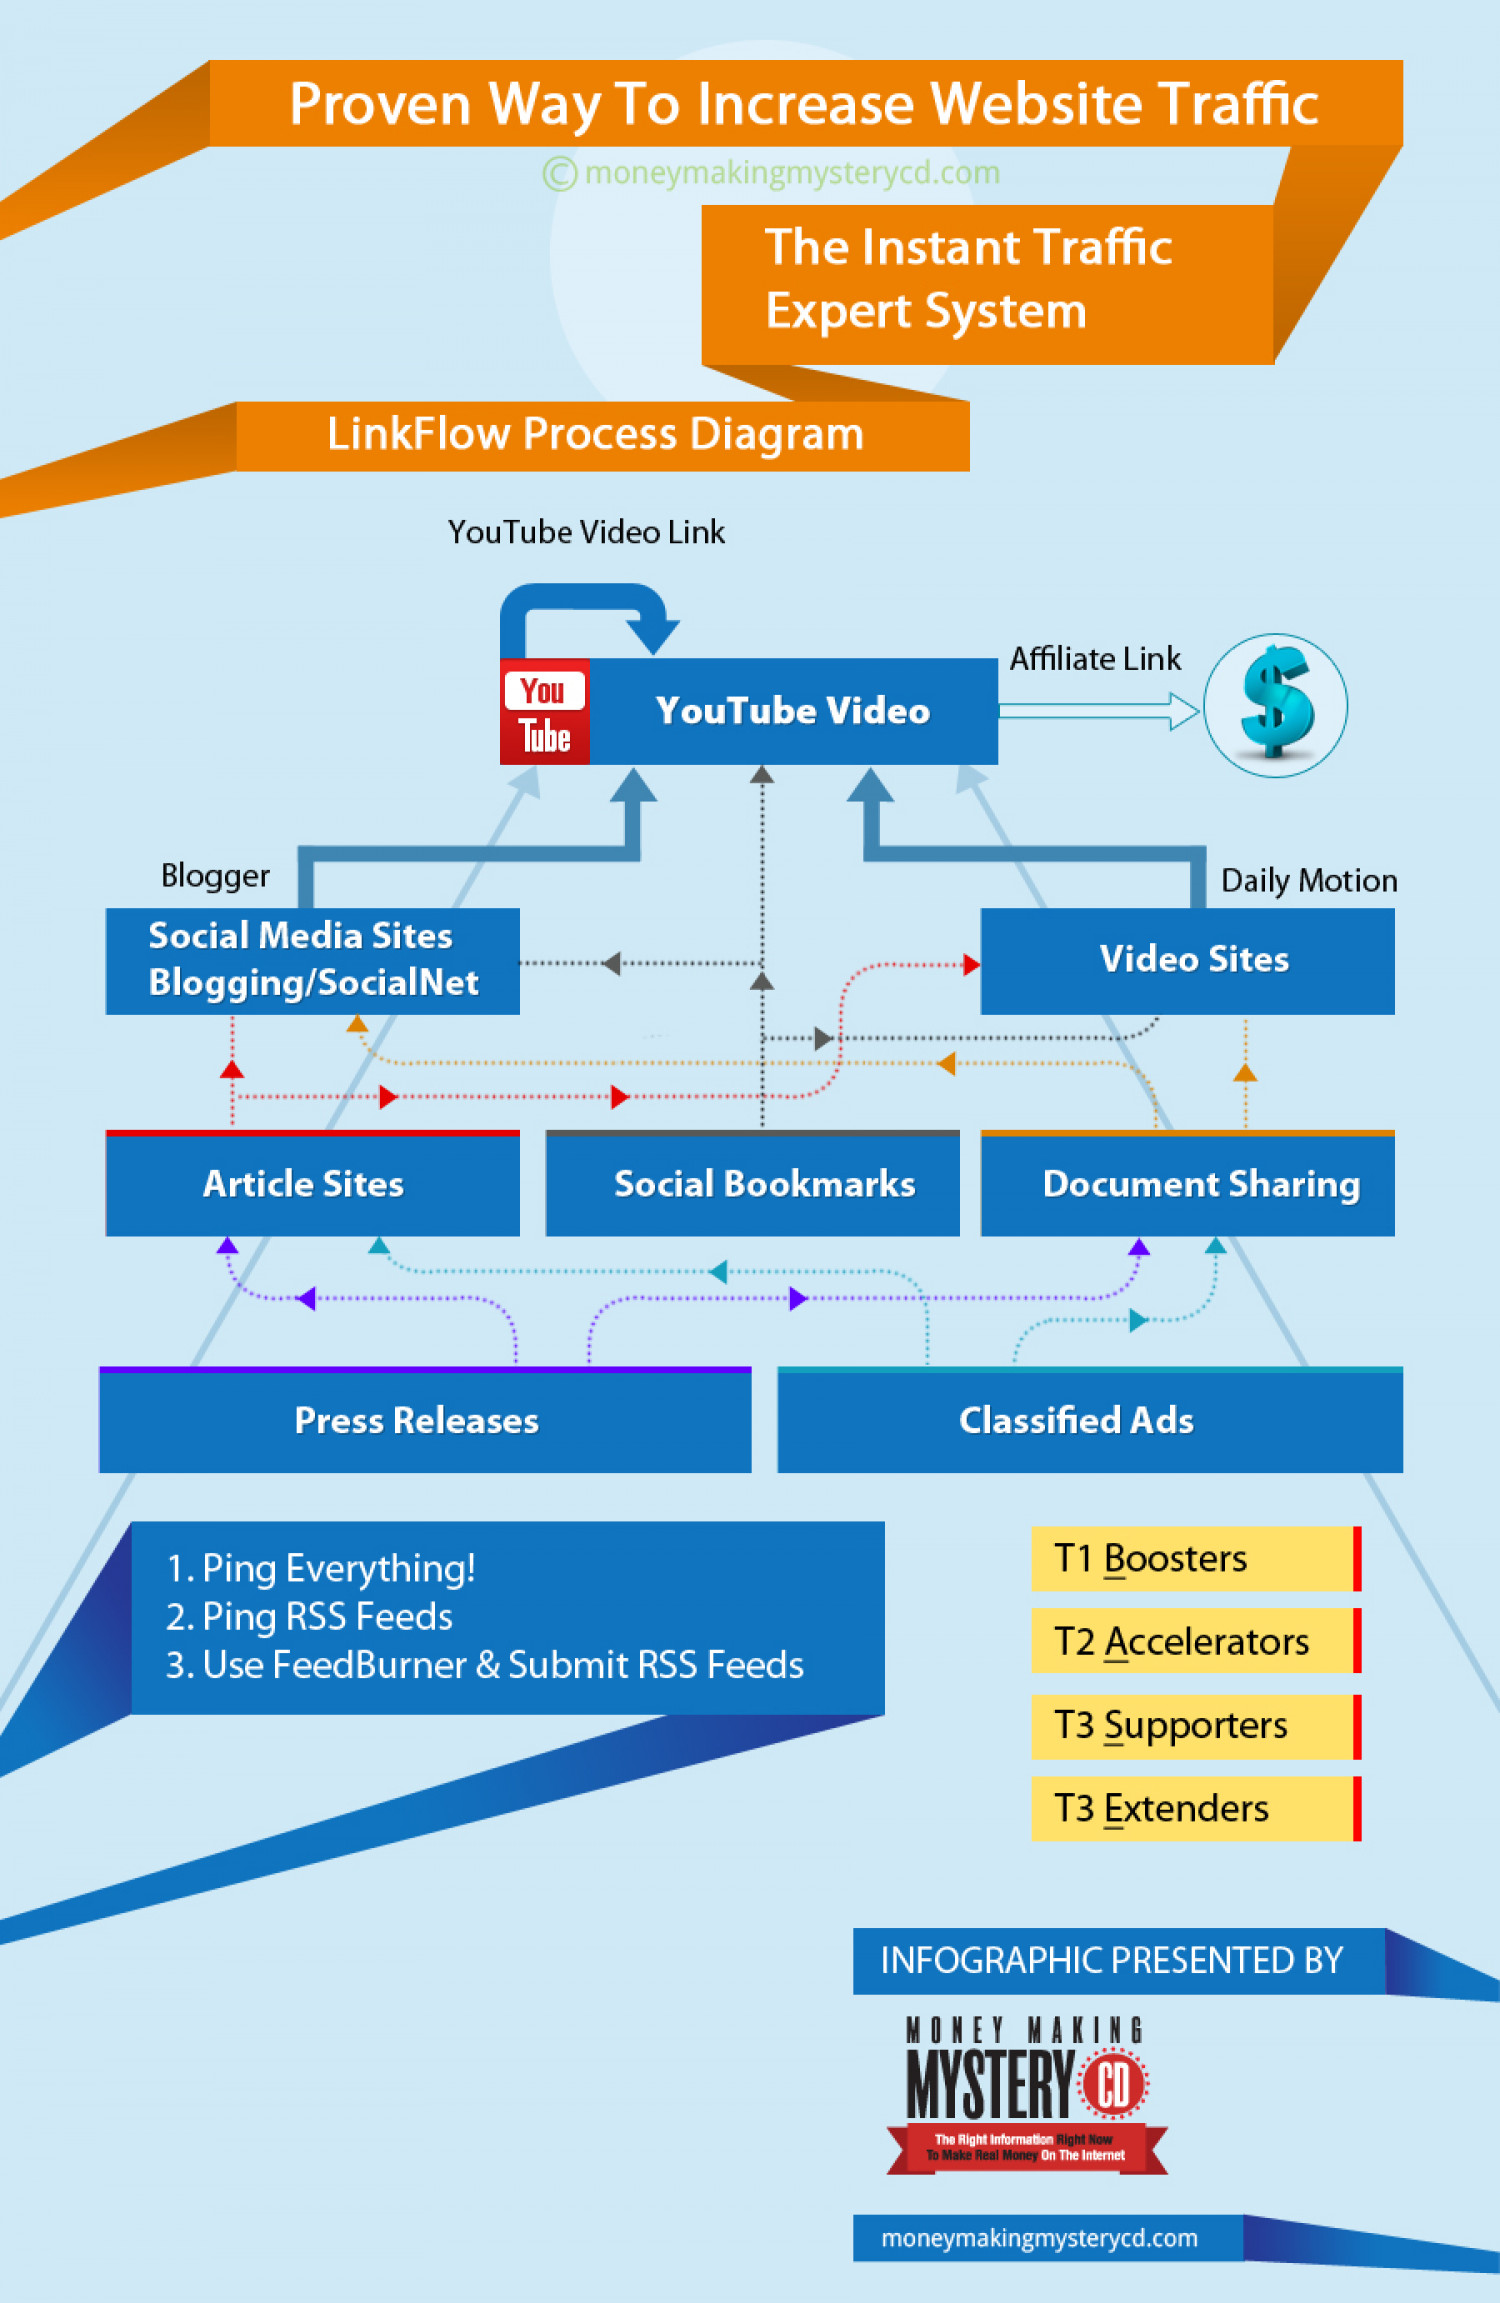 Here's How to Increase Website Traffic Infographic